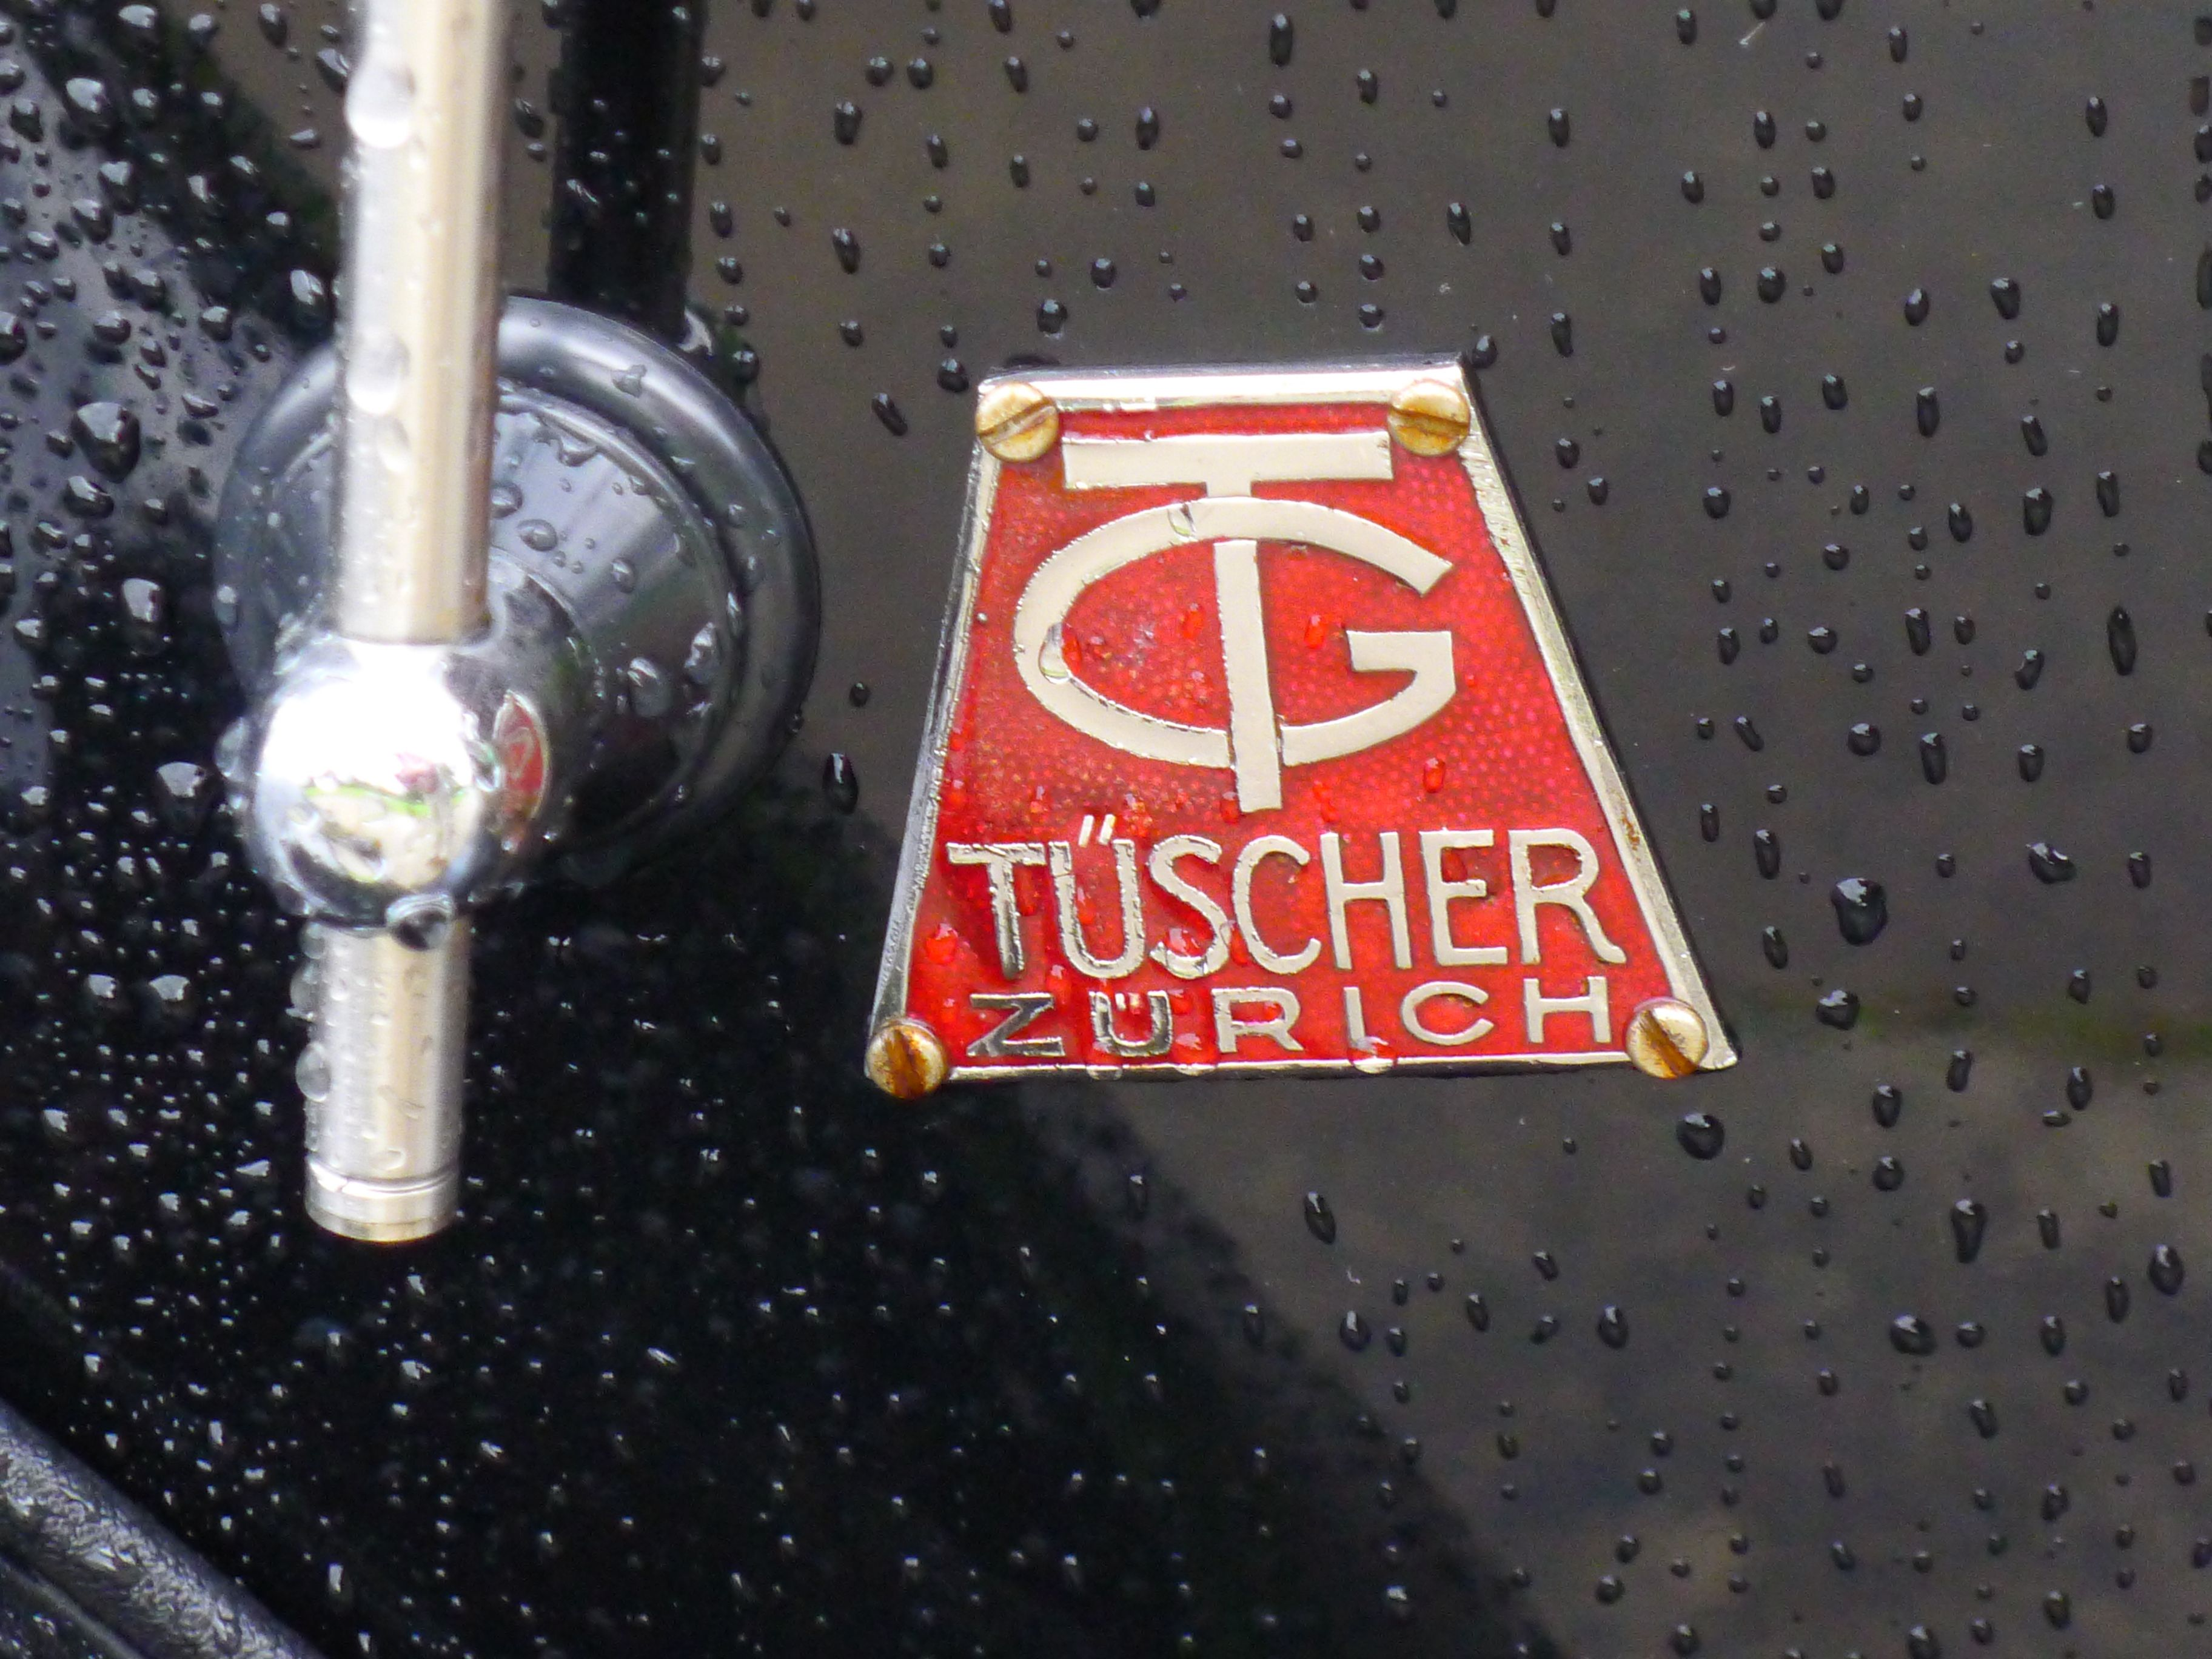 This is my 1937 Chrysler 6 DeLuxe , Coachbuild by Tüscher & Co. Zurich Chassis number 10171420 engine number P4*64337* The car was sold by dealer Epper in Luzern (Lucerne, Switzerland), Both companies, Epper and Tüscher are still in business. The engine is a 6cyl. 3299.3 cc (201,3 cid) . 82Hp (60.4 kW) @ 3600 RPM. Under the hood, on the left side you can still see the World War II confiscate number 203853.  More pictures on :  http://users.skynet.be/bruno.costers/chrysler/gespot.html